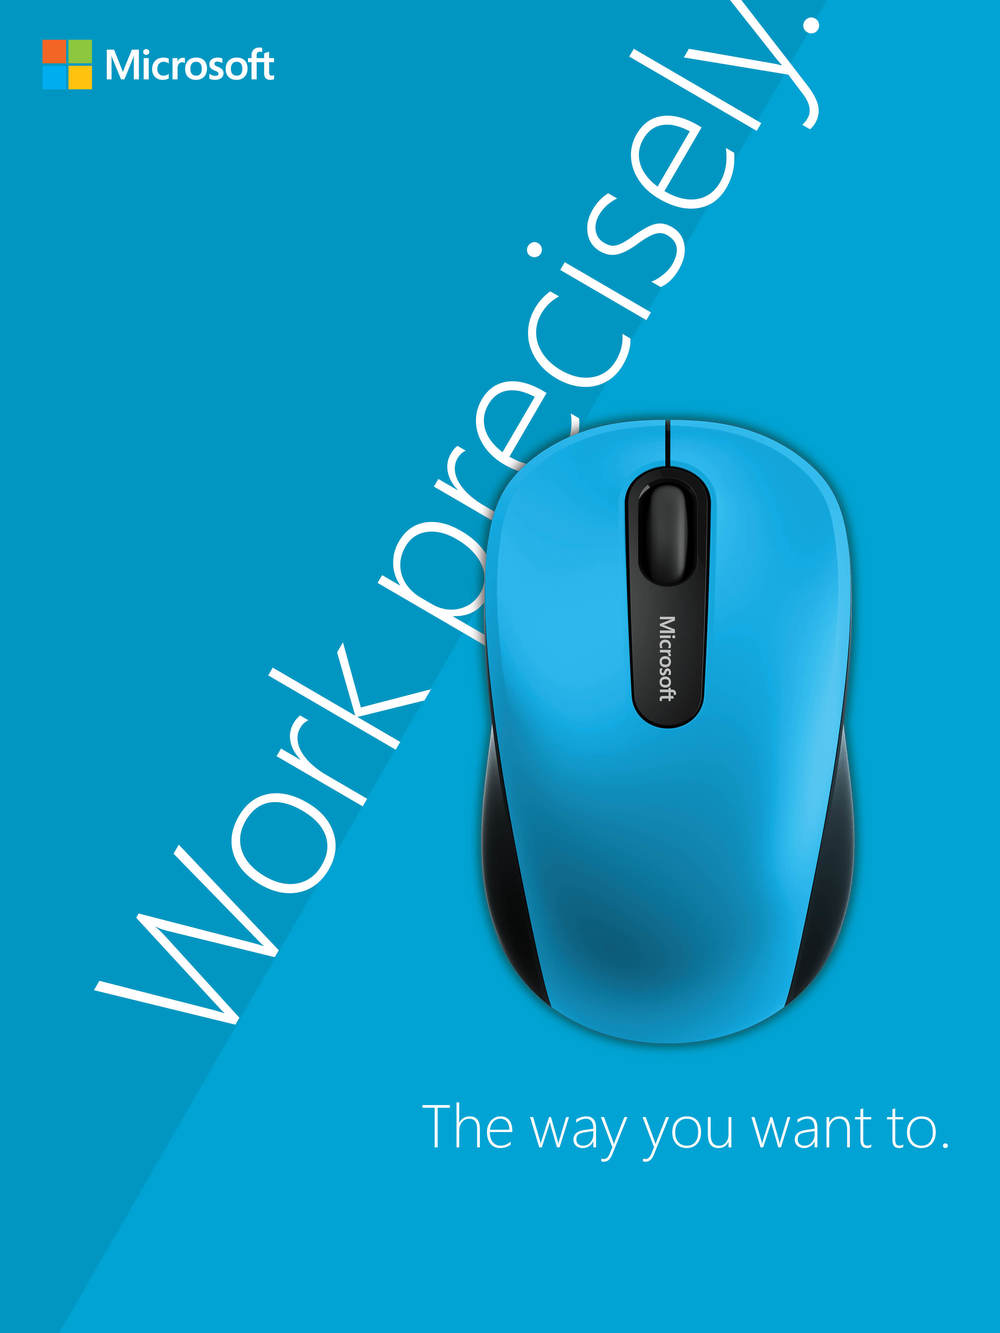 Microsoft Bluetooth Mouse - Windows Point of Sale